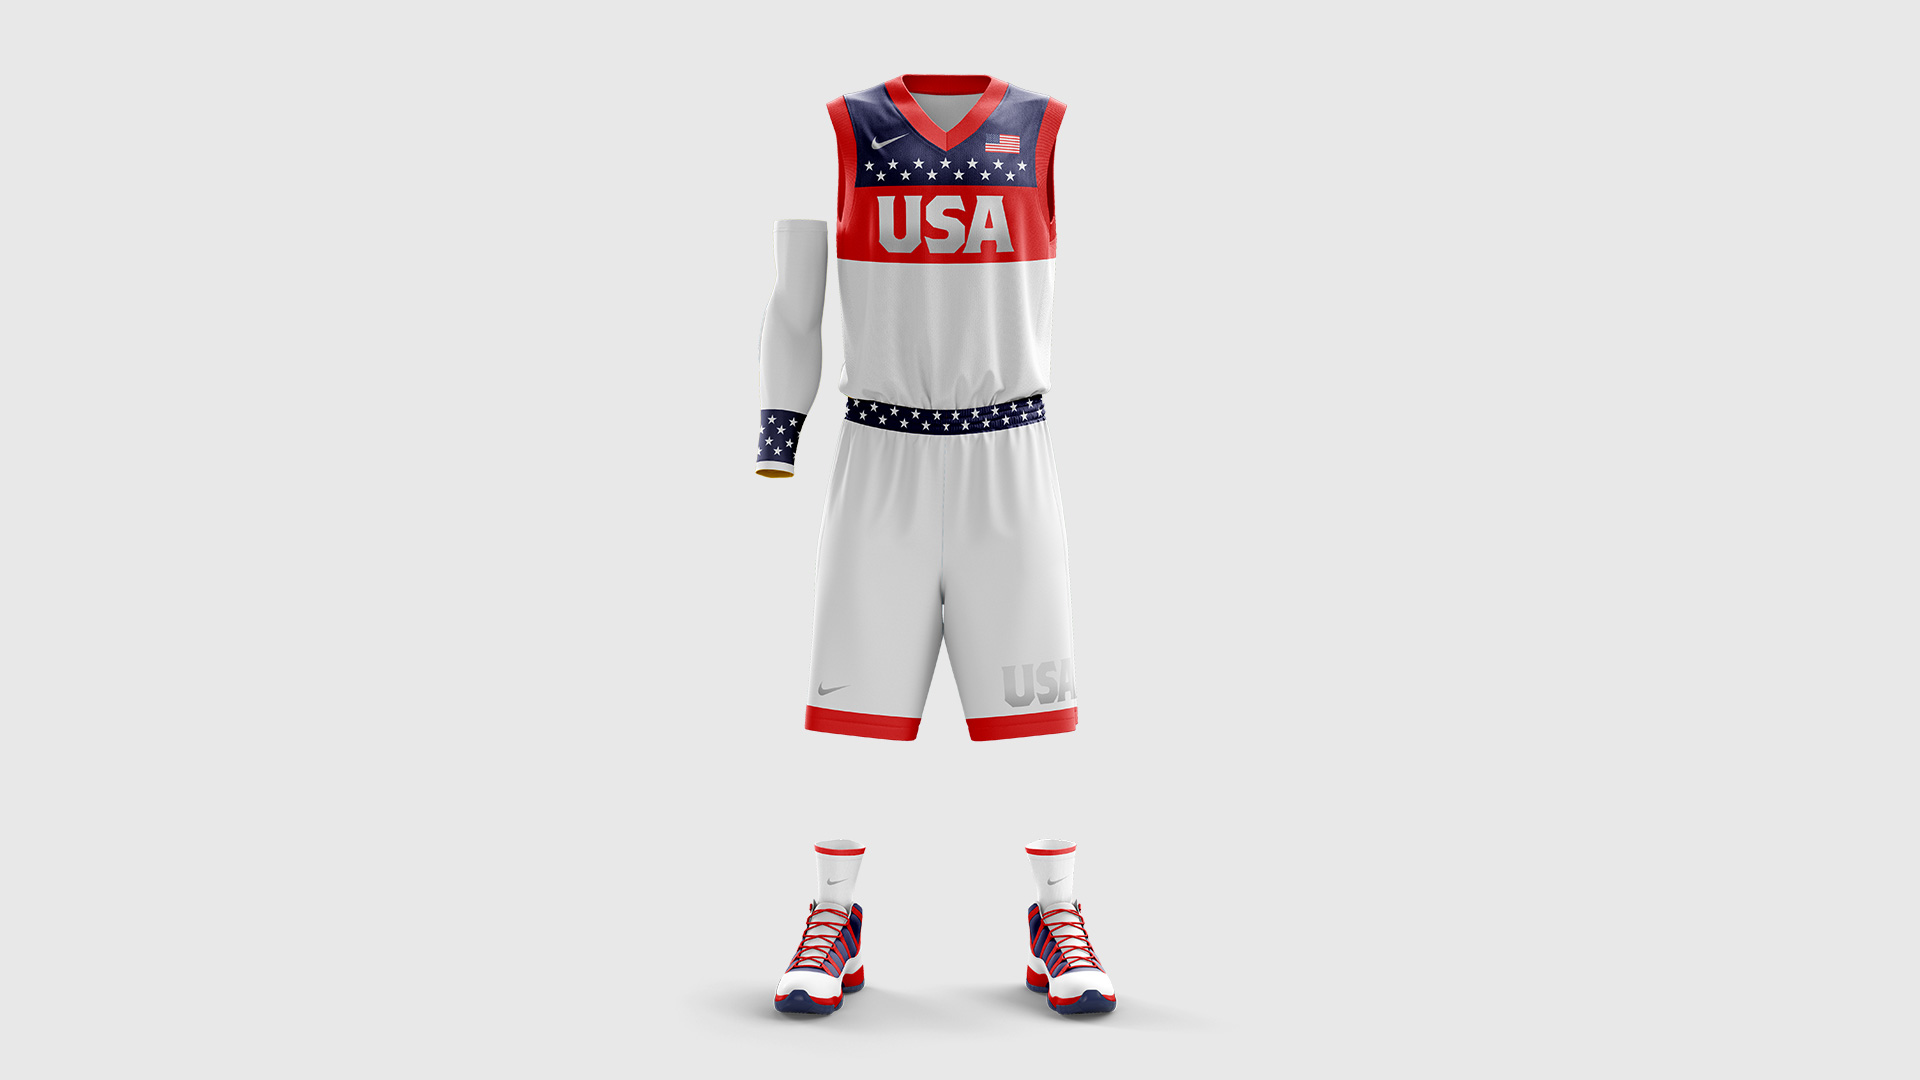 custom sports jersey concept designs basketball soccer